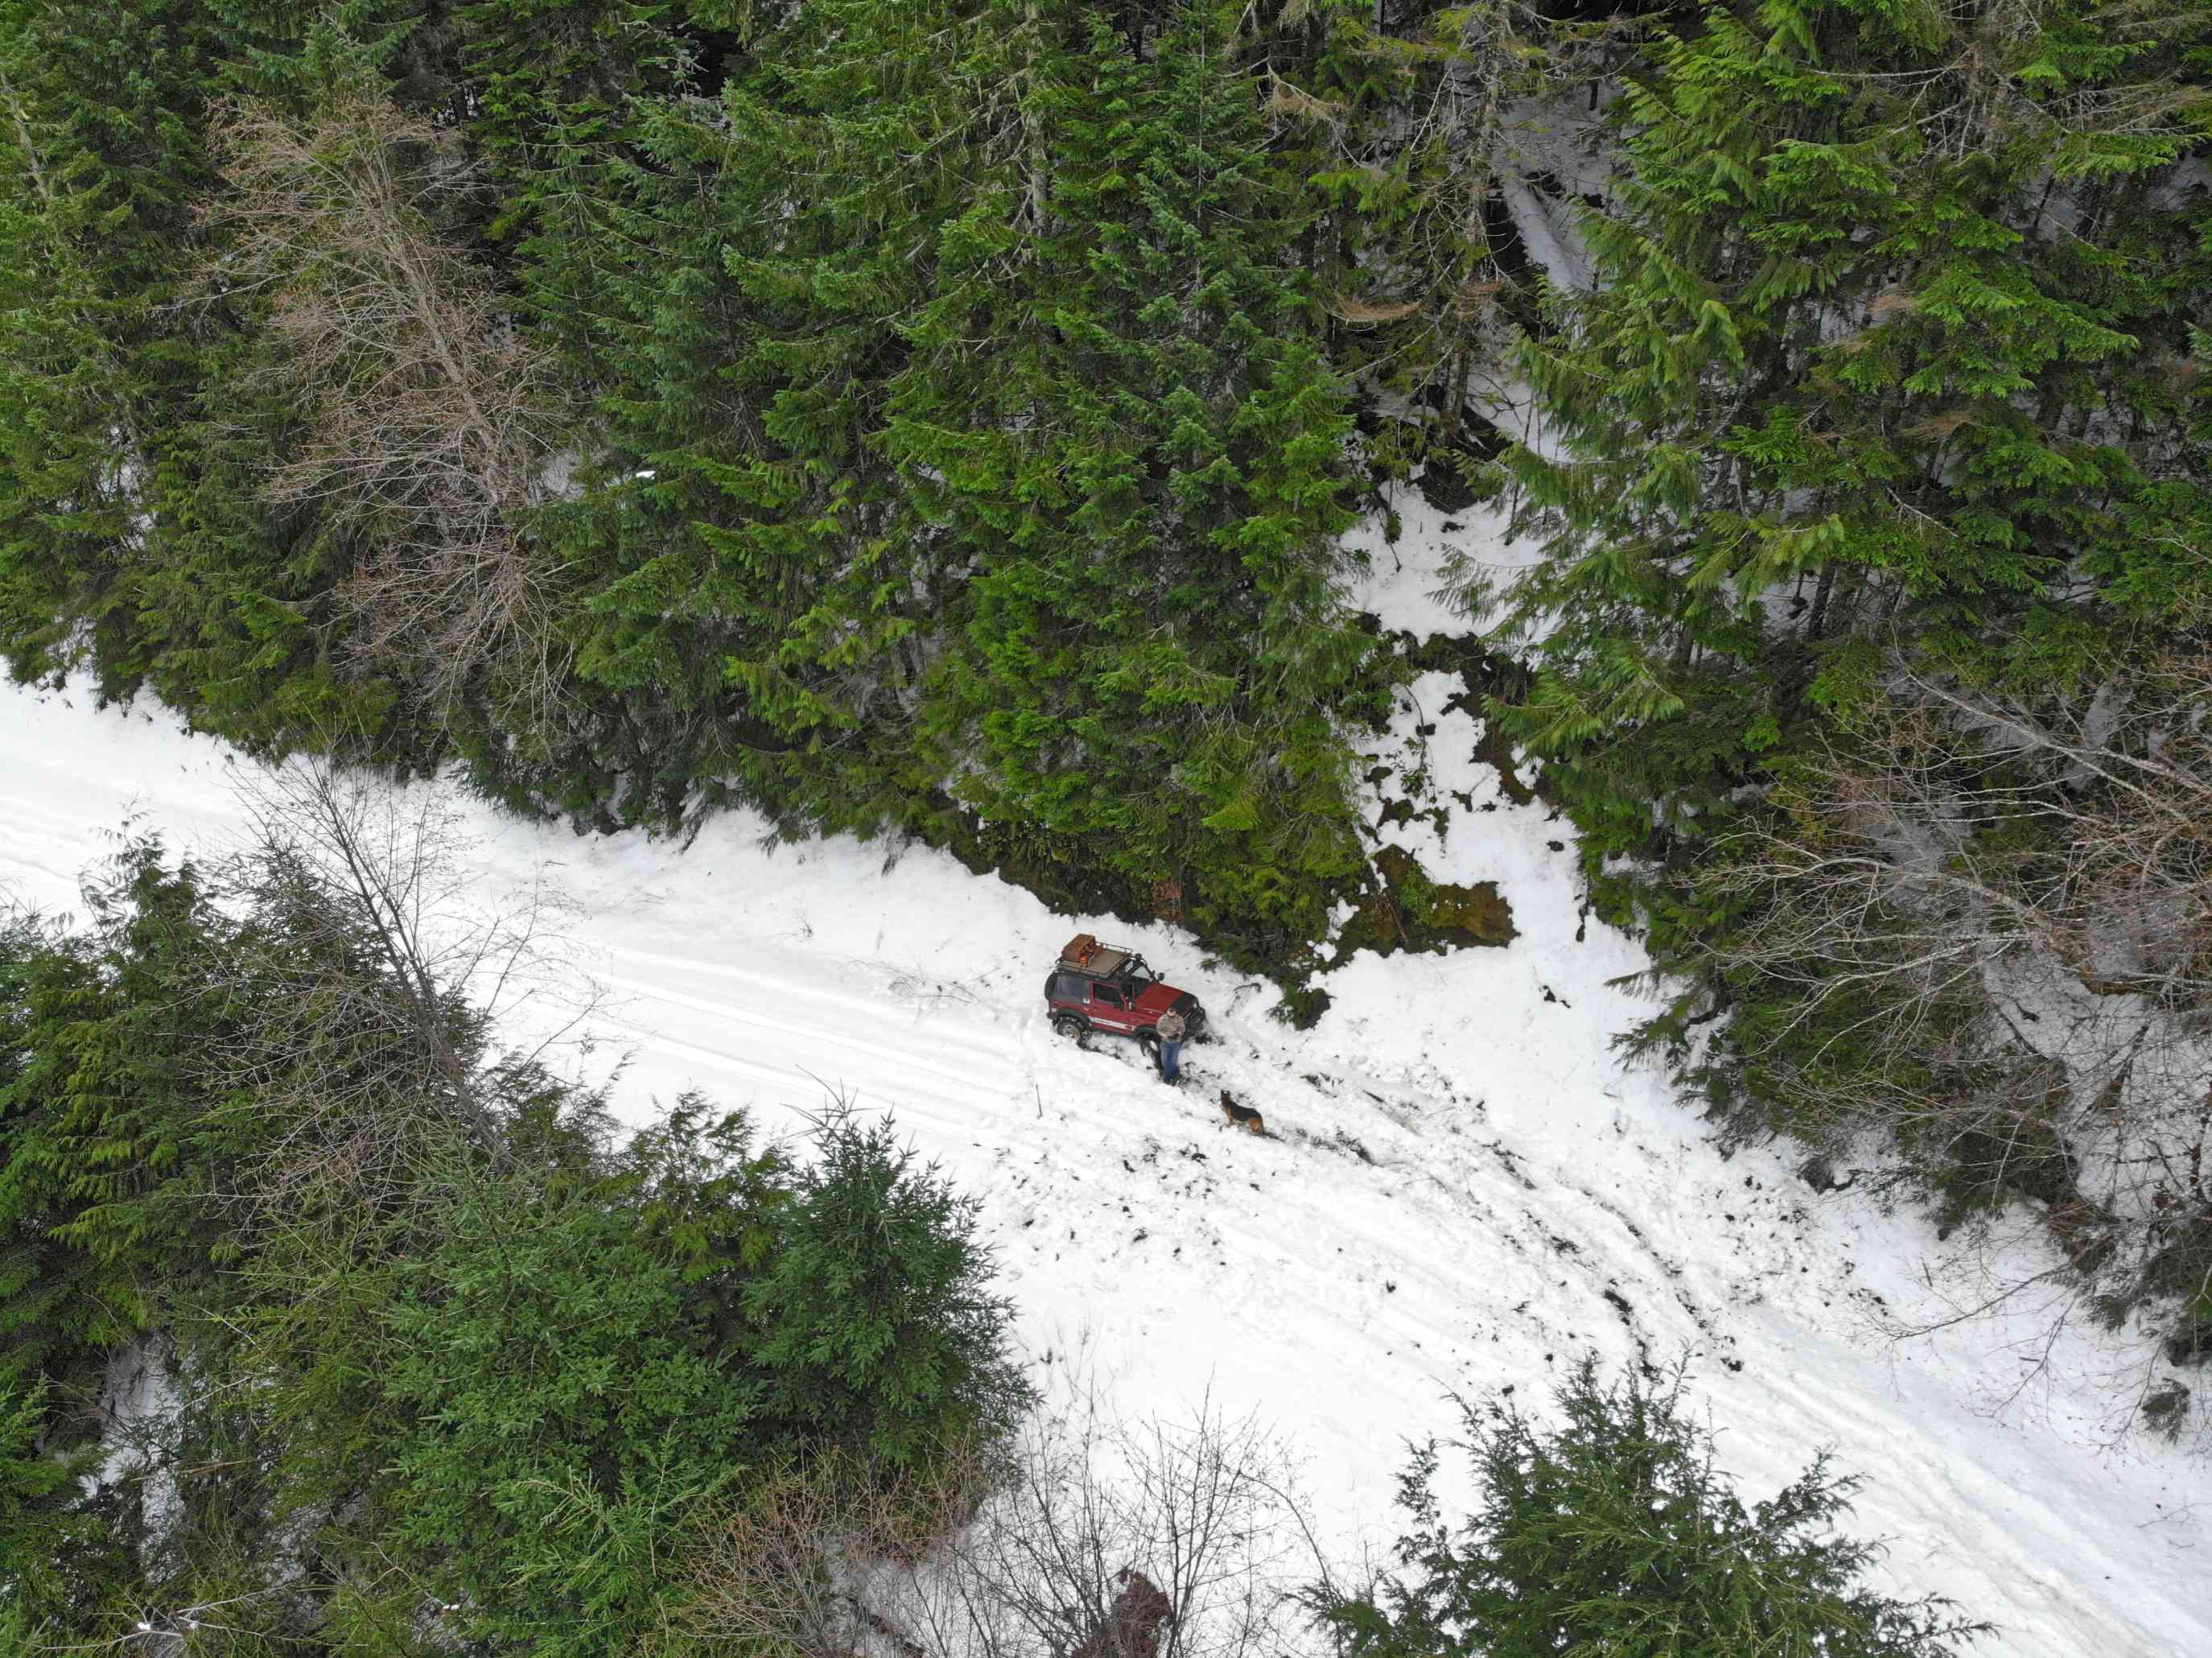 drone shot of red jeep in snowy woods